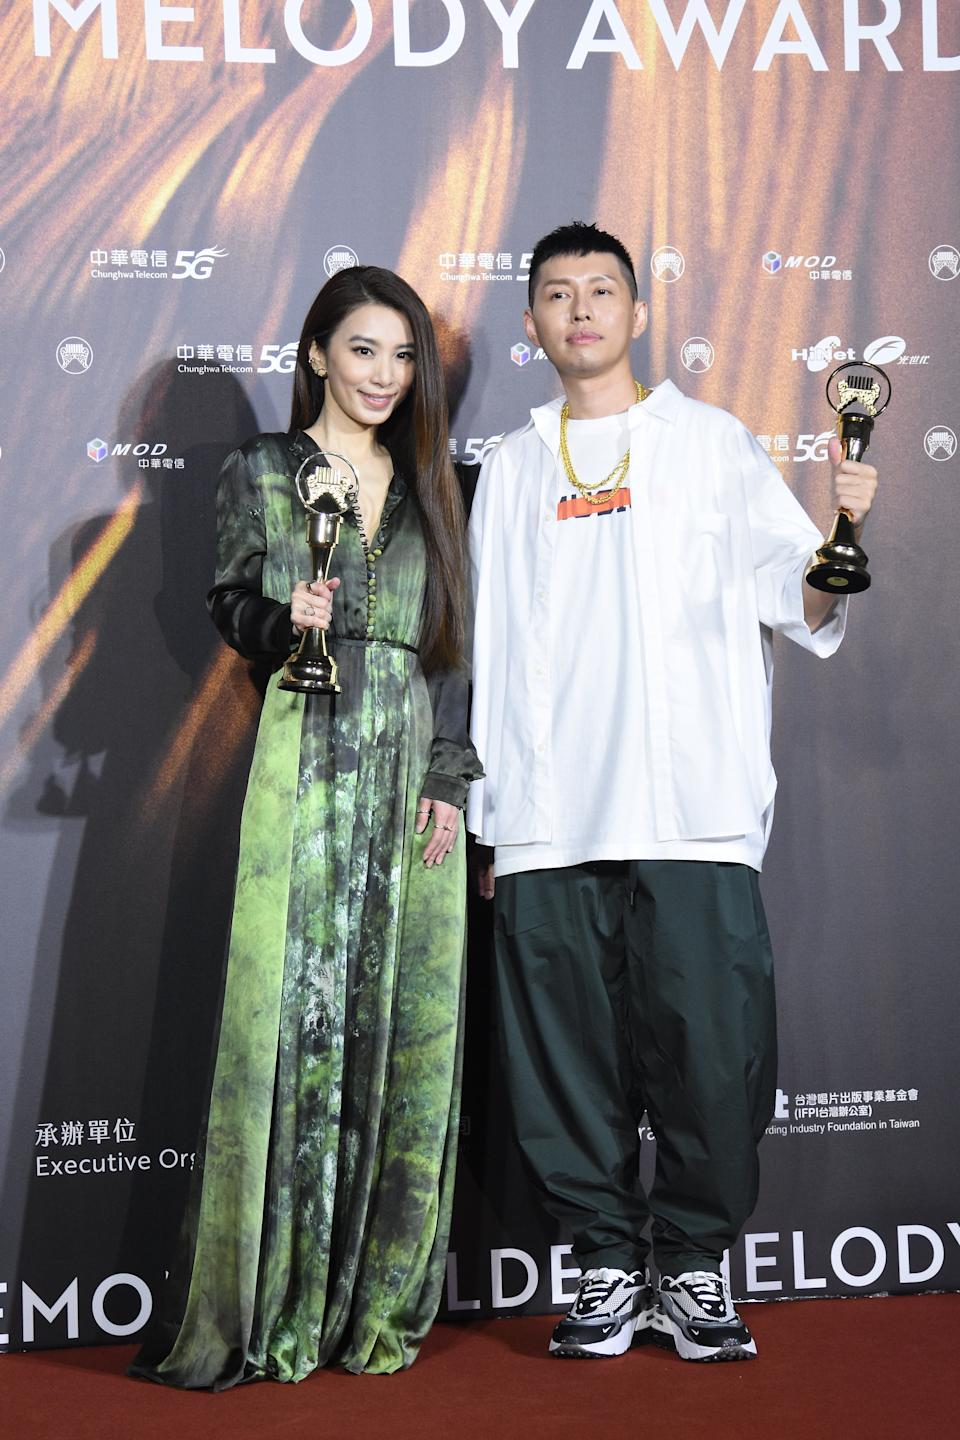 TAIPEI, CHINA - AUGUST 21: Singer Hebe Tien (L) and singer Soft Lipa pose with trophies backstage during the 32nd Golden Melody Awards on August 21, 2021 in Taipei, Taiwan of China. (Photo by Chen Lihong/VCG via Getty Images)